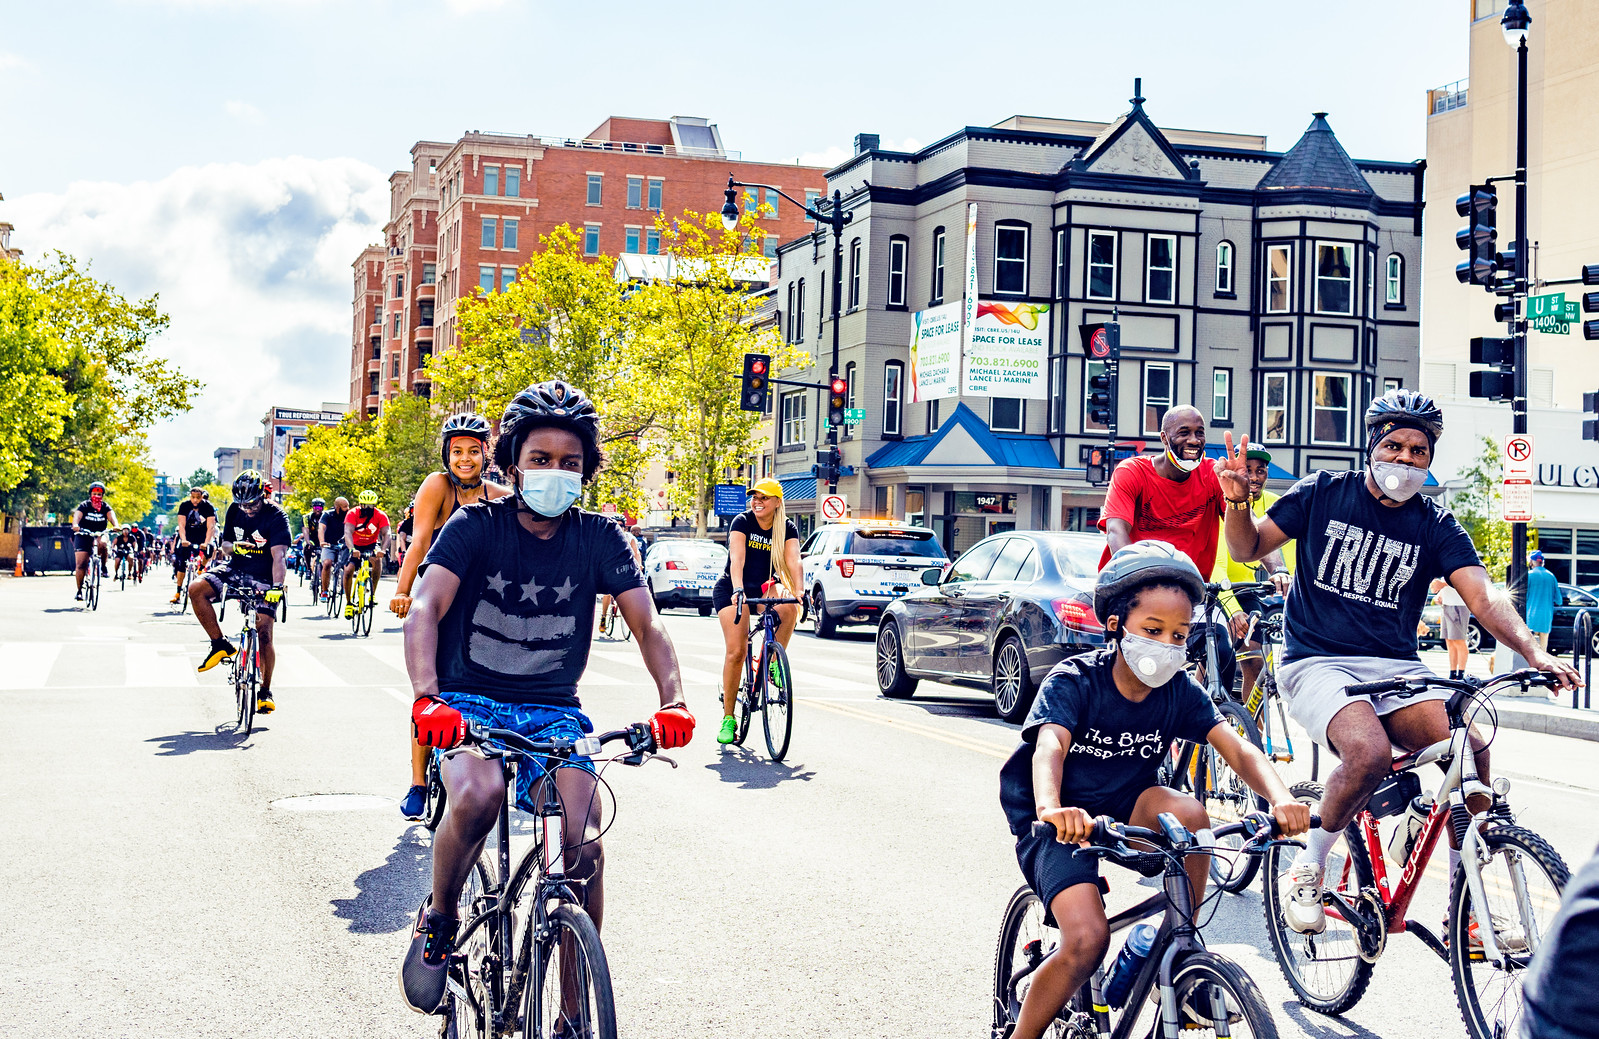 Thank you for using my photo, in As more global challenges collide with urbanist issues, we need your help to cover them – Greater Greater Washington